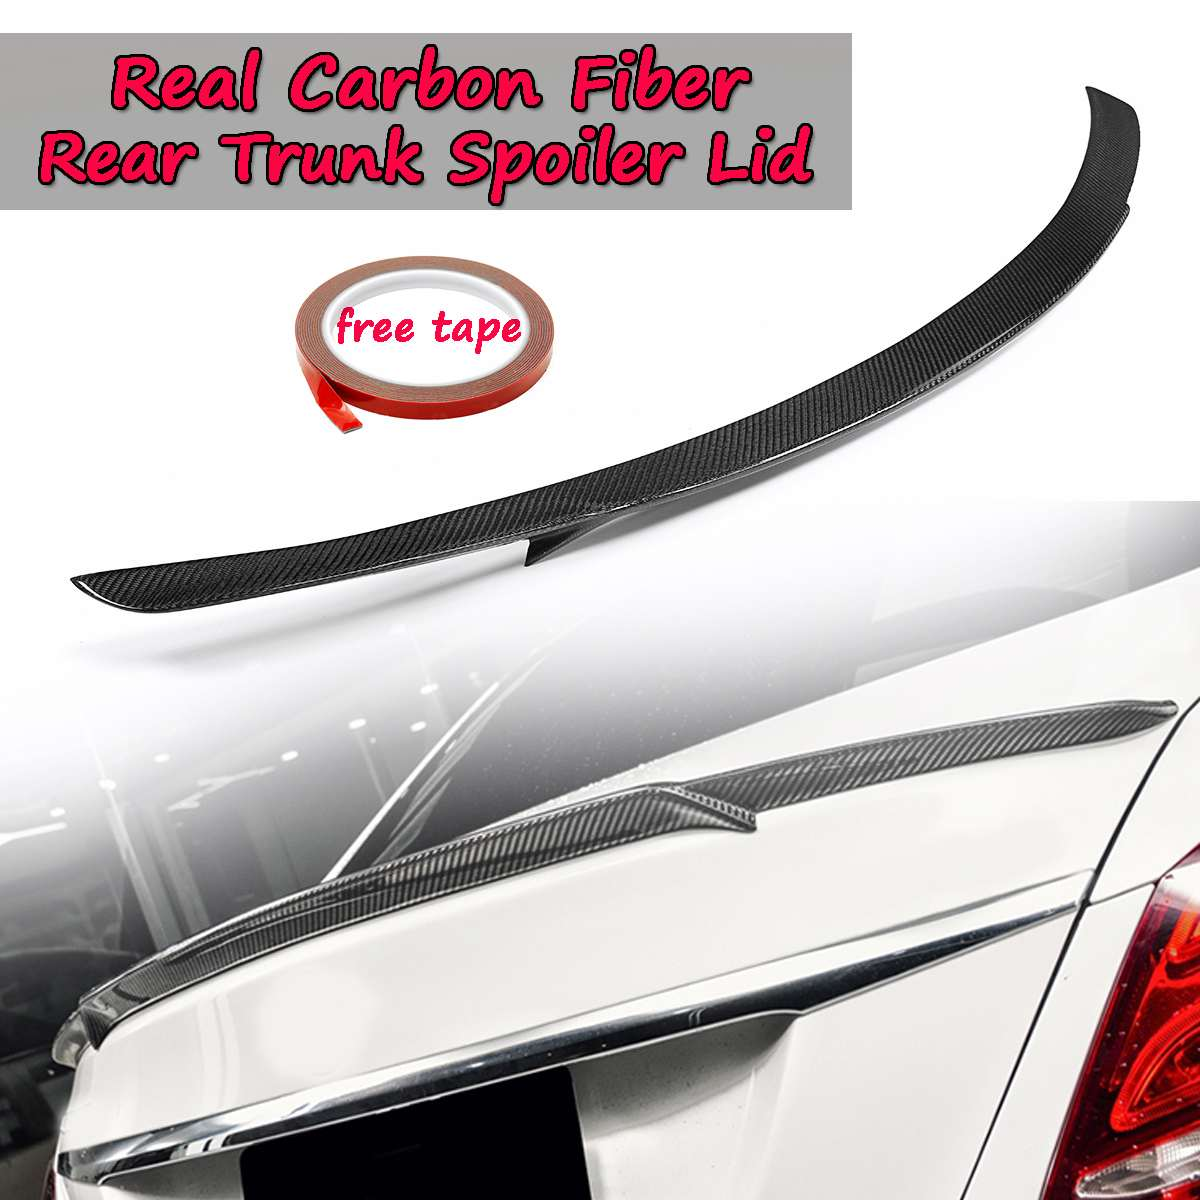 Real Carbon Fiber Trunk Spoiler Lid For Mercedes-Benz W205 C-Class & C63 For AMG S B STYLE 2015-2018 Rear Tunk Rear Wing Spoiler цена